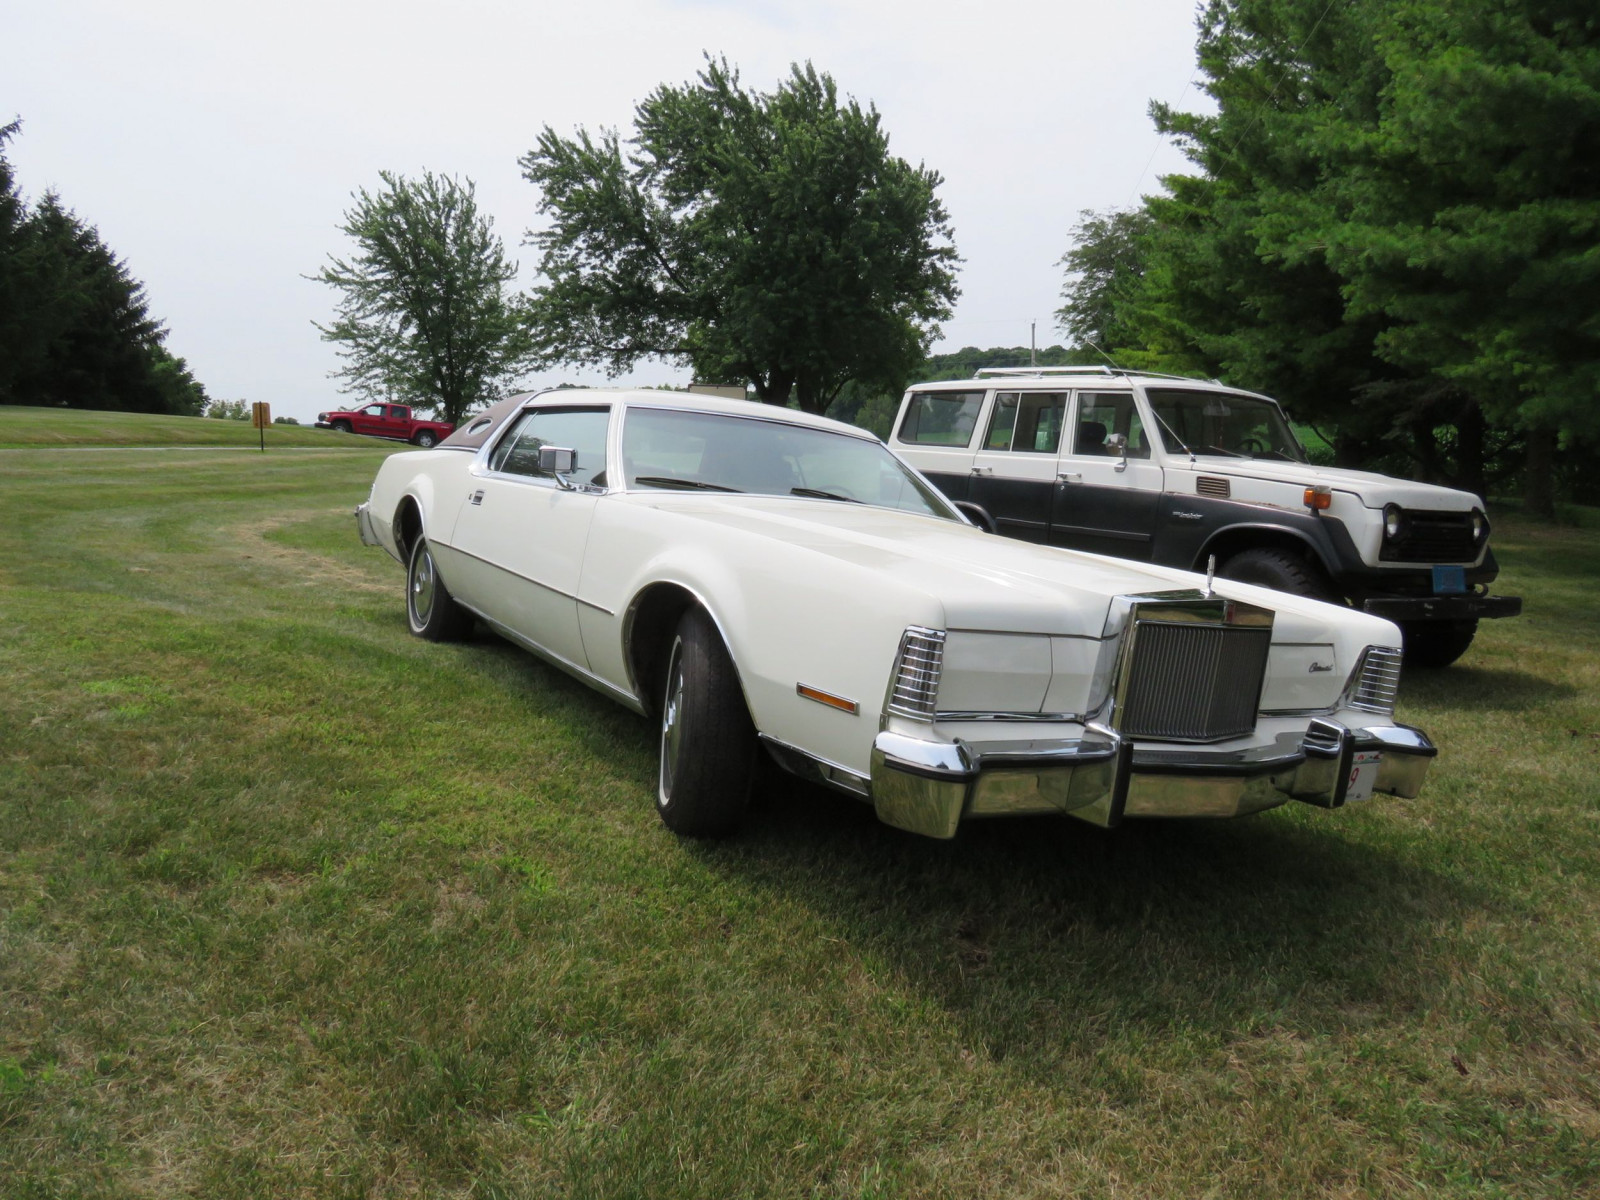 1976 Lincoln Continental Mark VI Coupe - Image 3